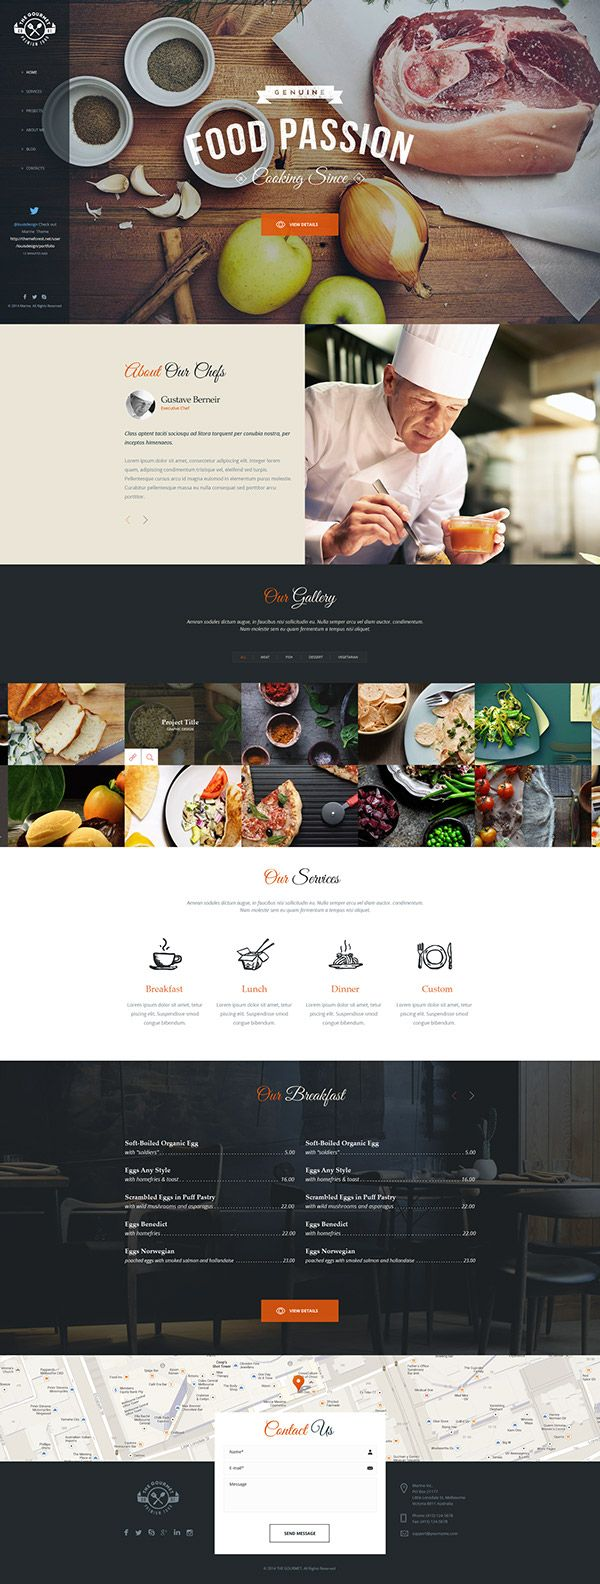 The Gourmet – Food WP Skin & Theme Published by Maan Ali